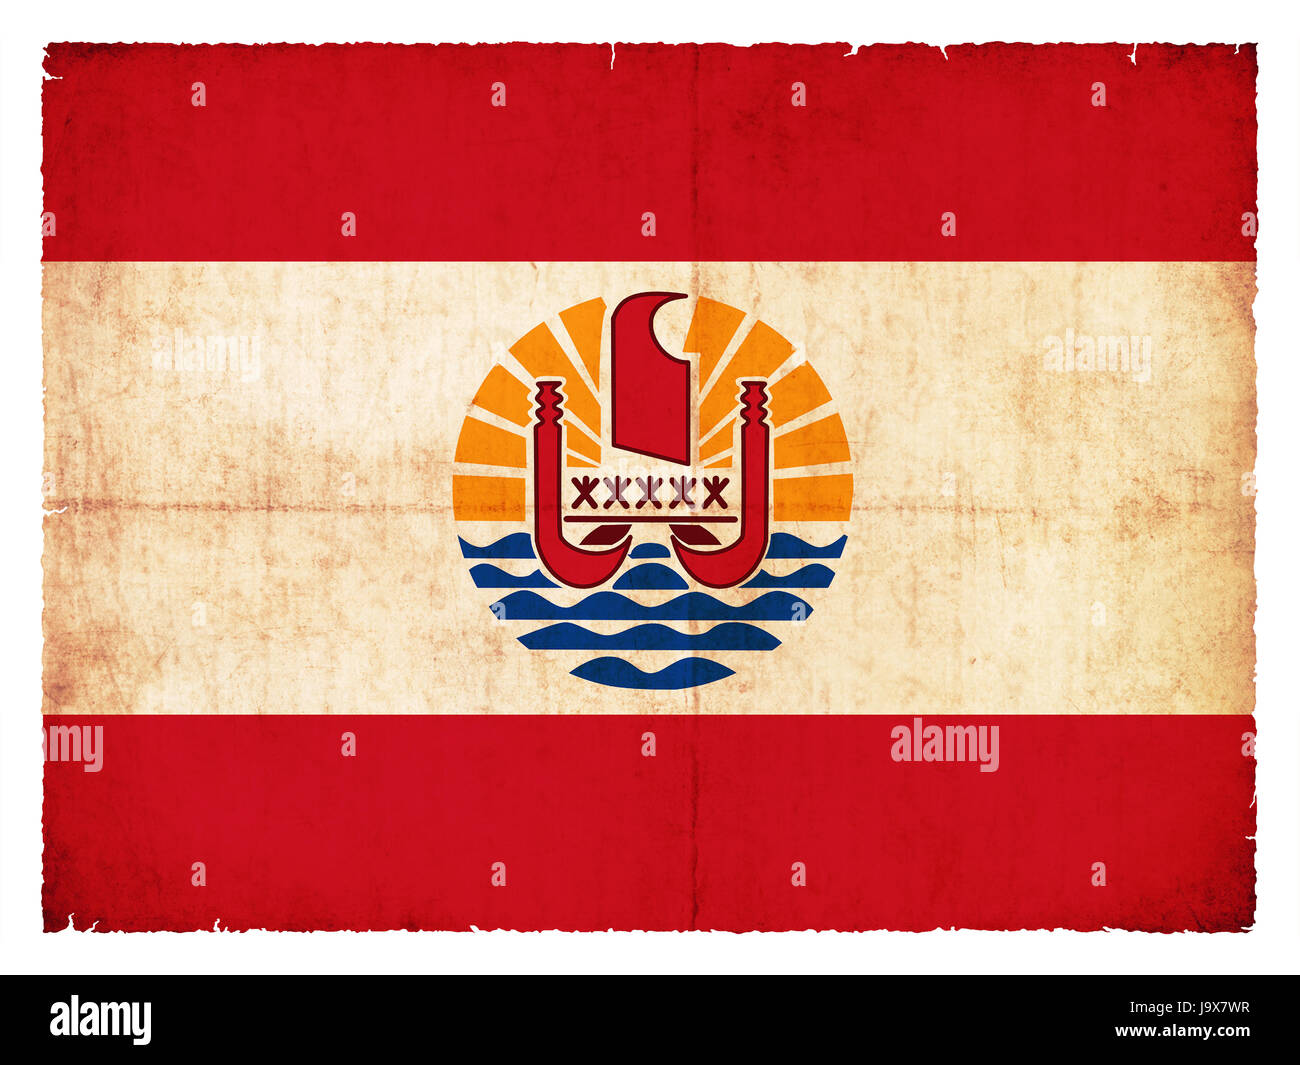 flag, style, old, antique, colony, france, flag, soils, the South Seas, - Stock Image